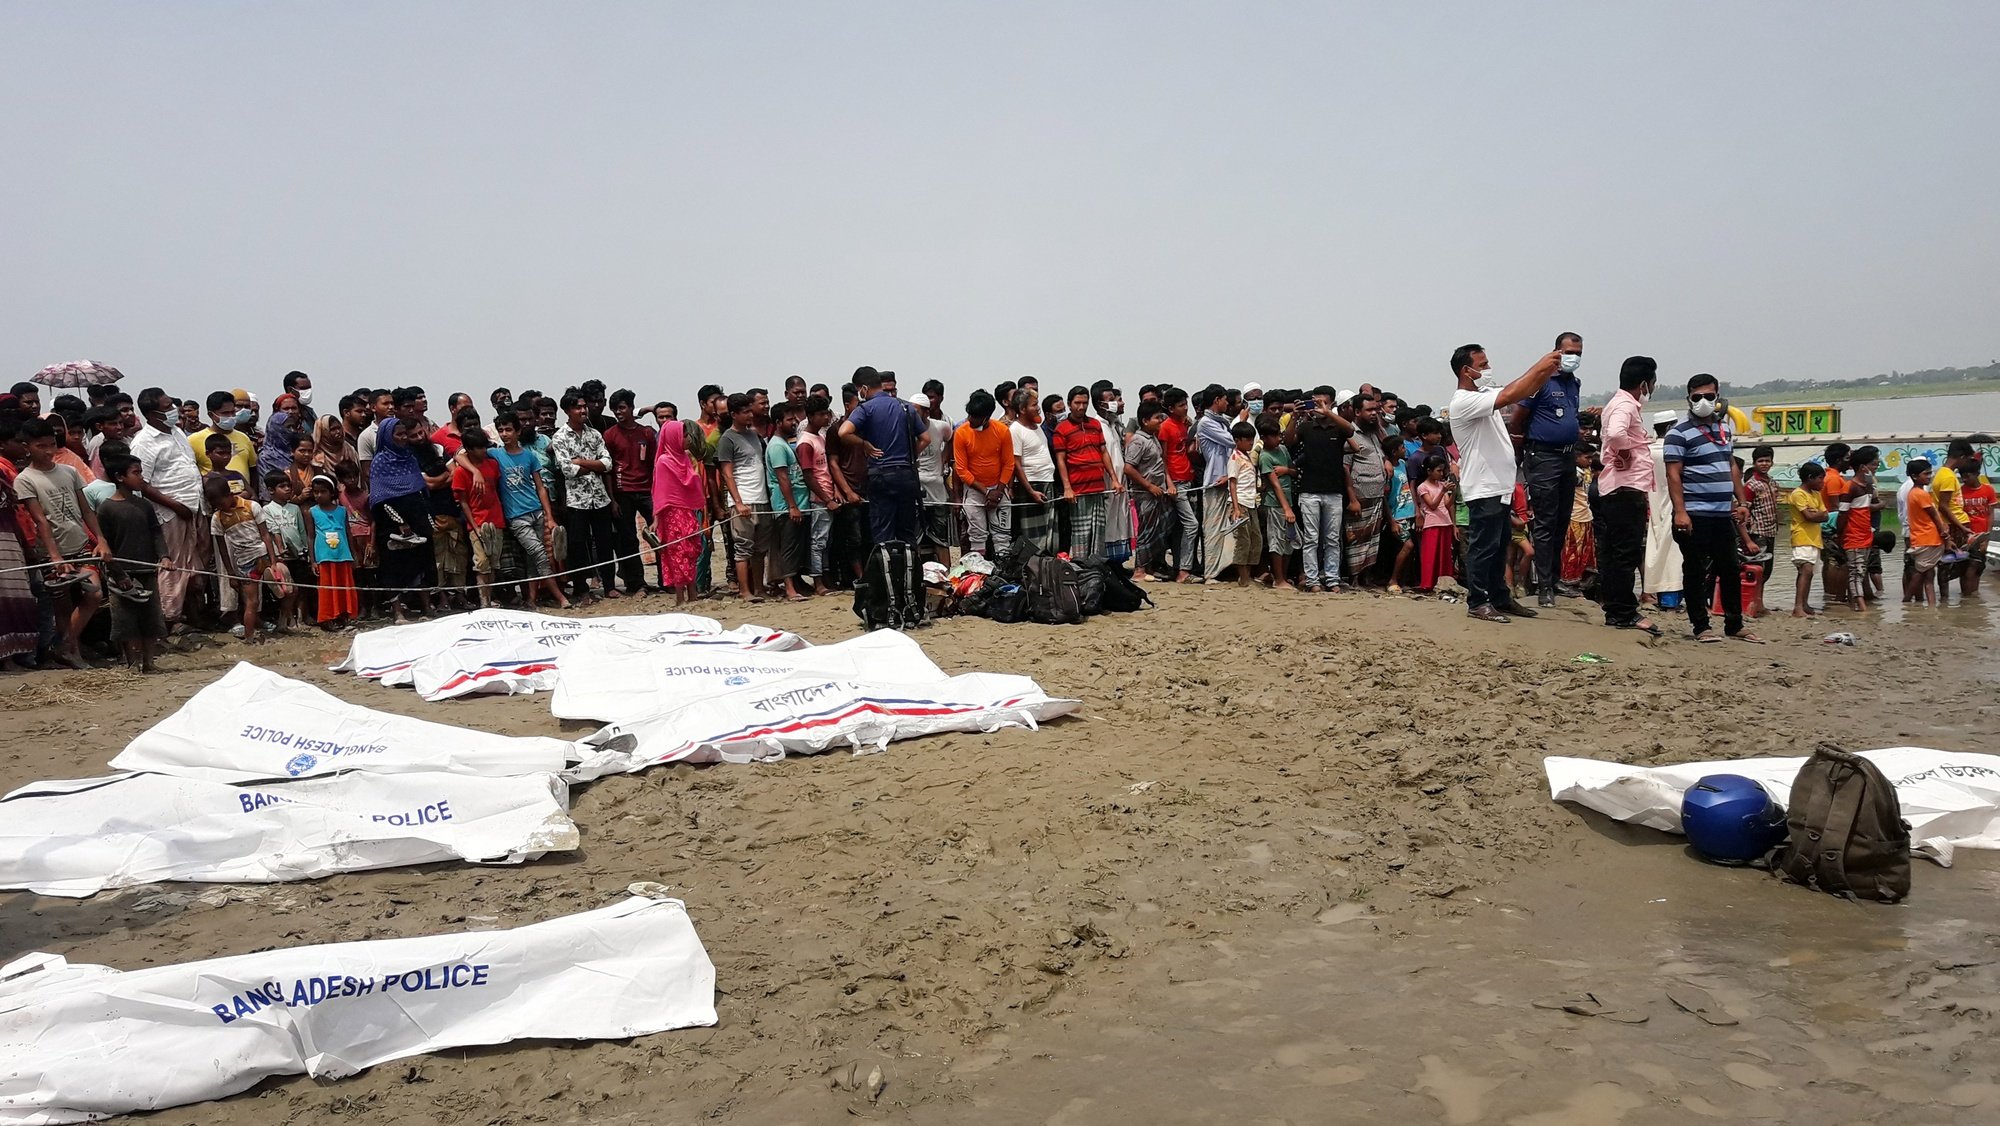 epa09175113 Local people stand by the river as they look at rescue workers lay out the bodies recovered from the river in body bags after a speedboat collided with another boat in the Padma River in Madaripur District,  Bangladesh, 03 May 2021. Local police said at least 26 people were killed and several others went missing after the incident.  EPA/STR